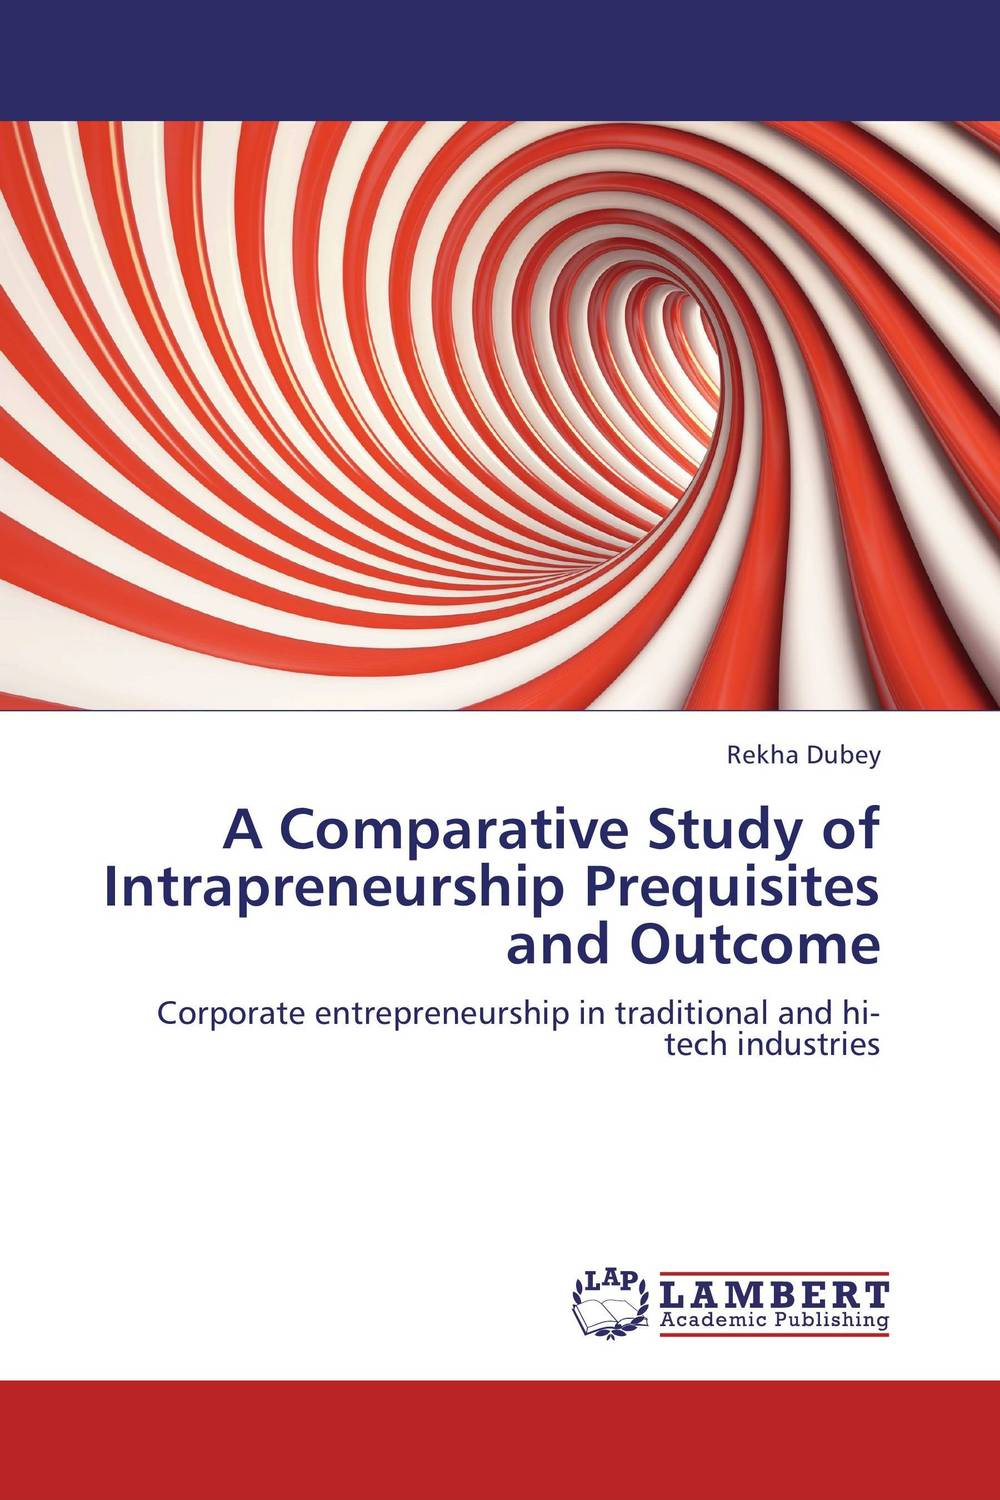 A Comparative Study of Intrapreneurship Prequisites and Outcome a study of the religio political thought of abdurrahman wahid